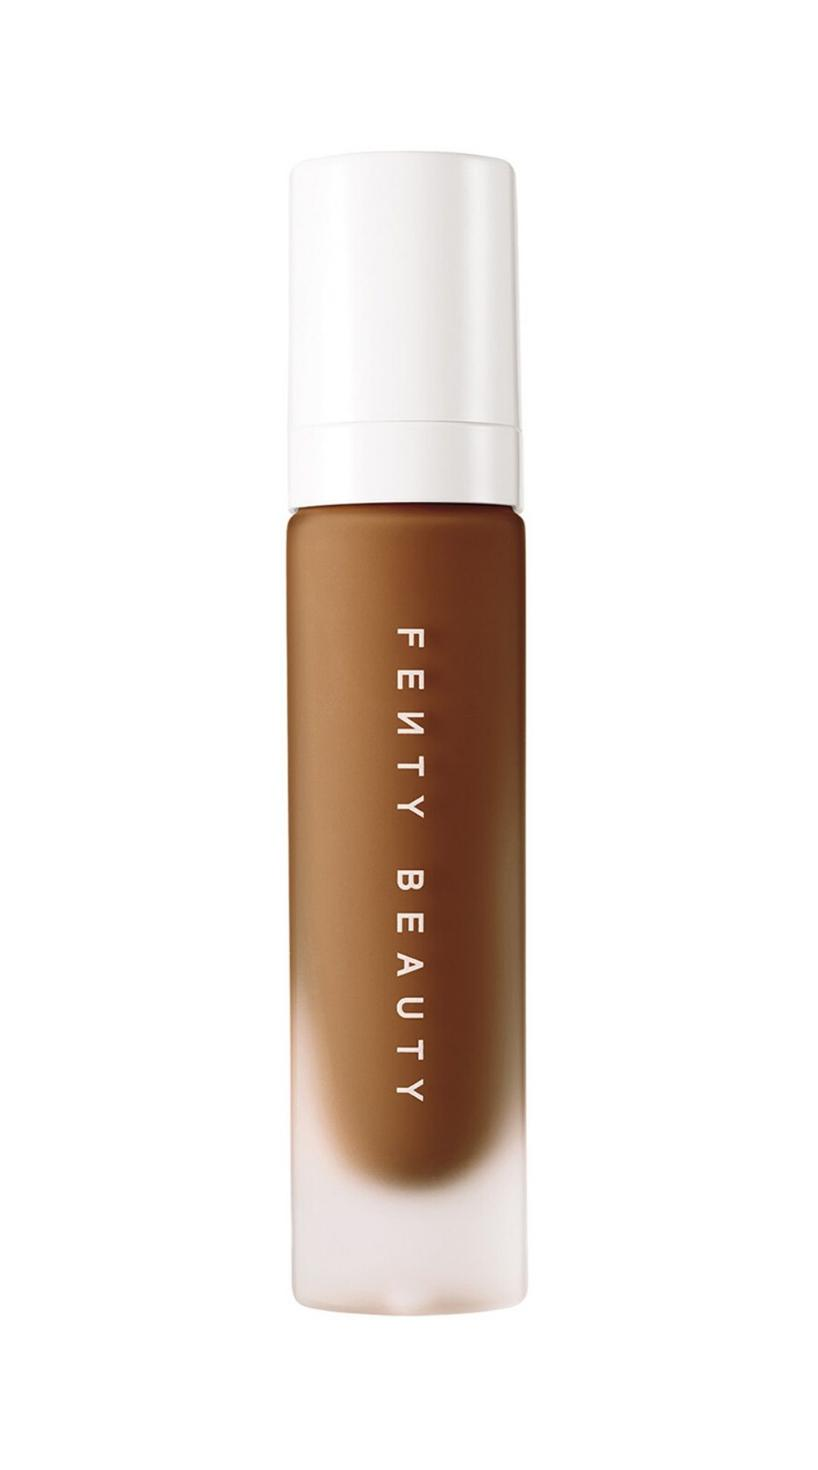 Best foundations, Best concealers, 100 best beauty products, Sephora, Ounass, Dior, Charlotte Tilbury, Maybelline, Giorgio Armani, Tarte, Nars, Estee Lauder, Fenty Beauty